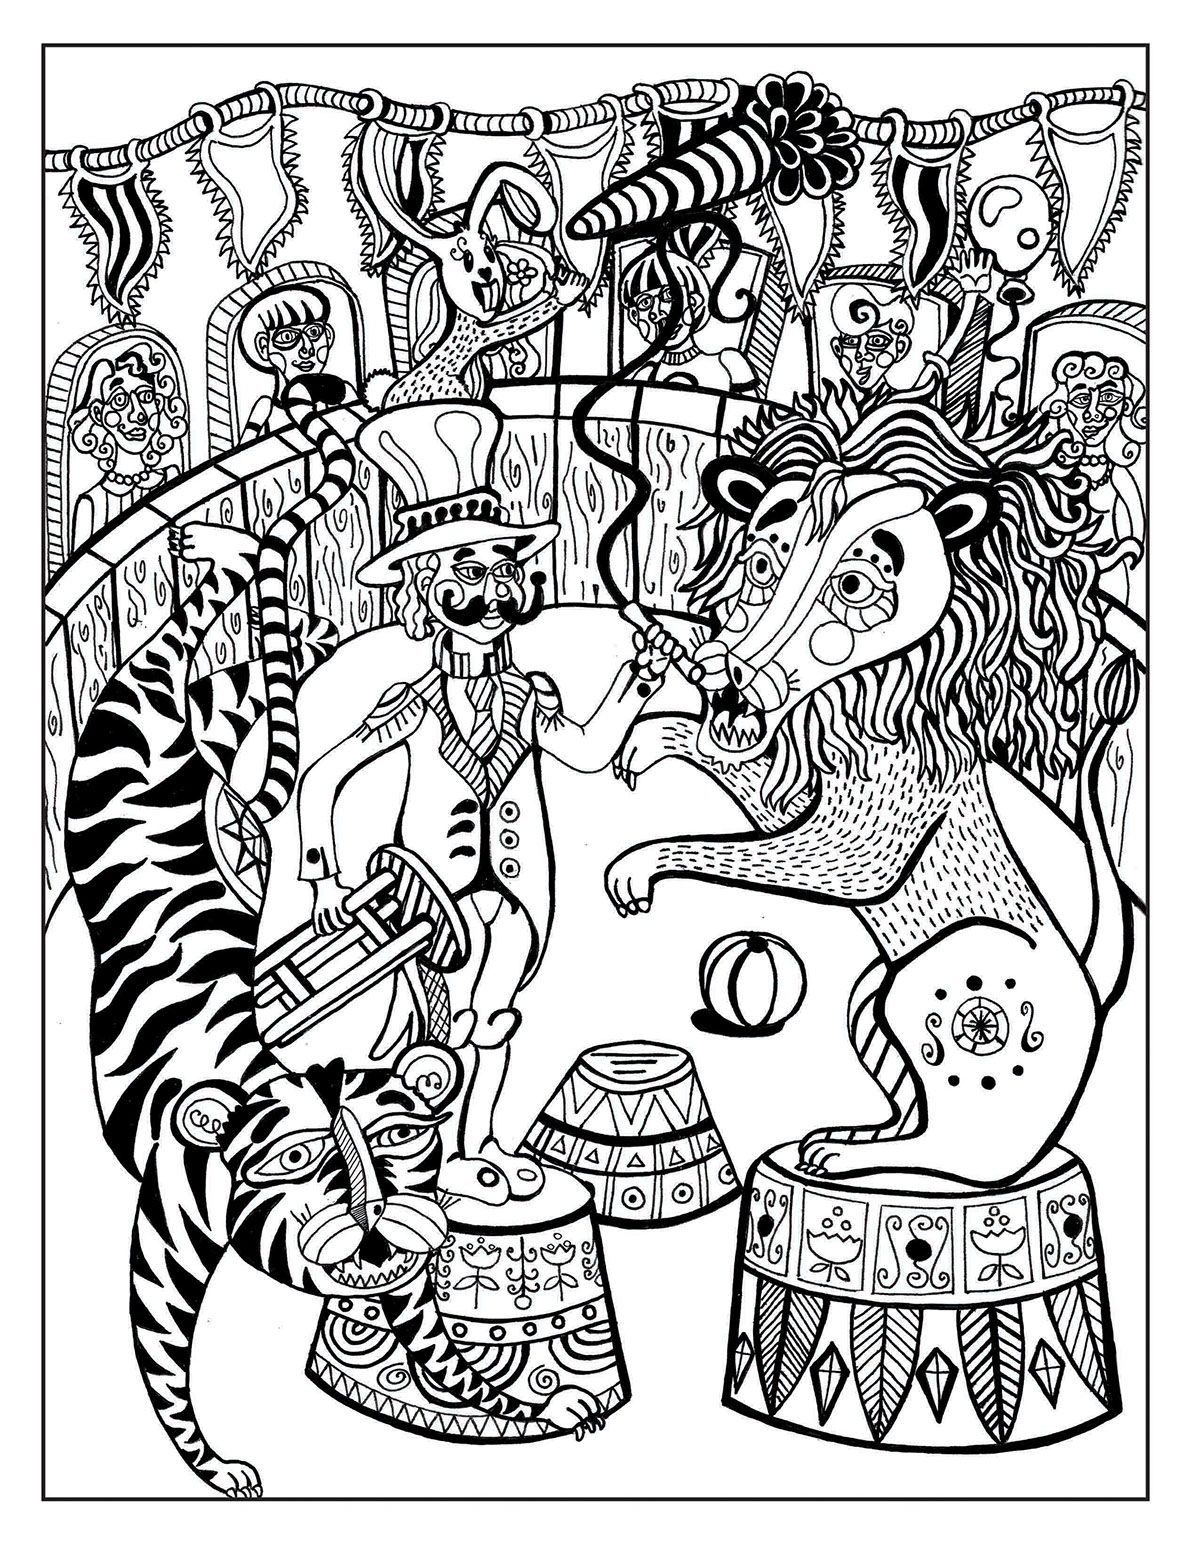 A Day At The Circus Coloring Page On Behance With Images